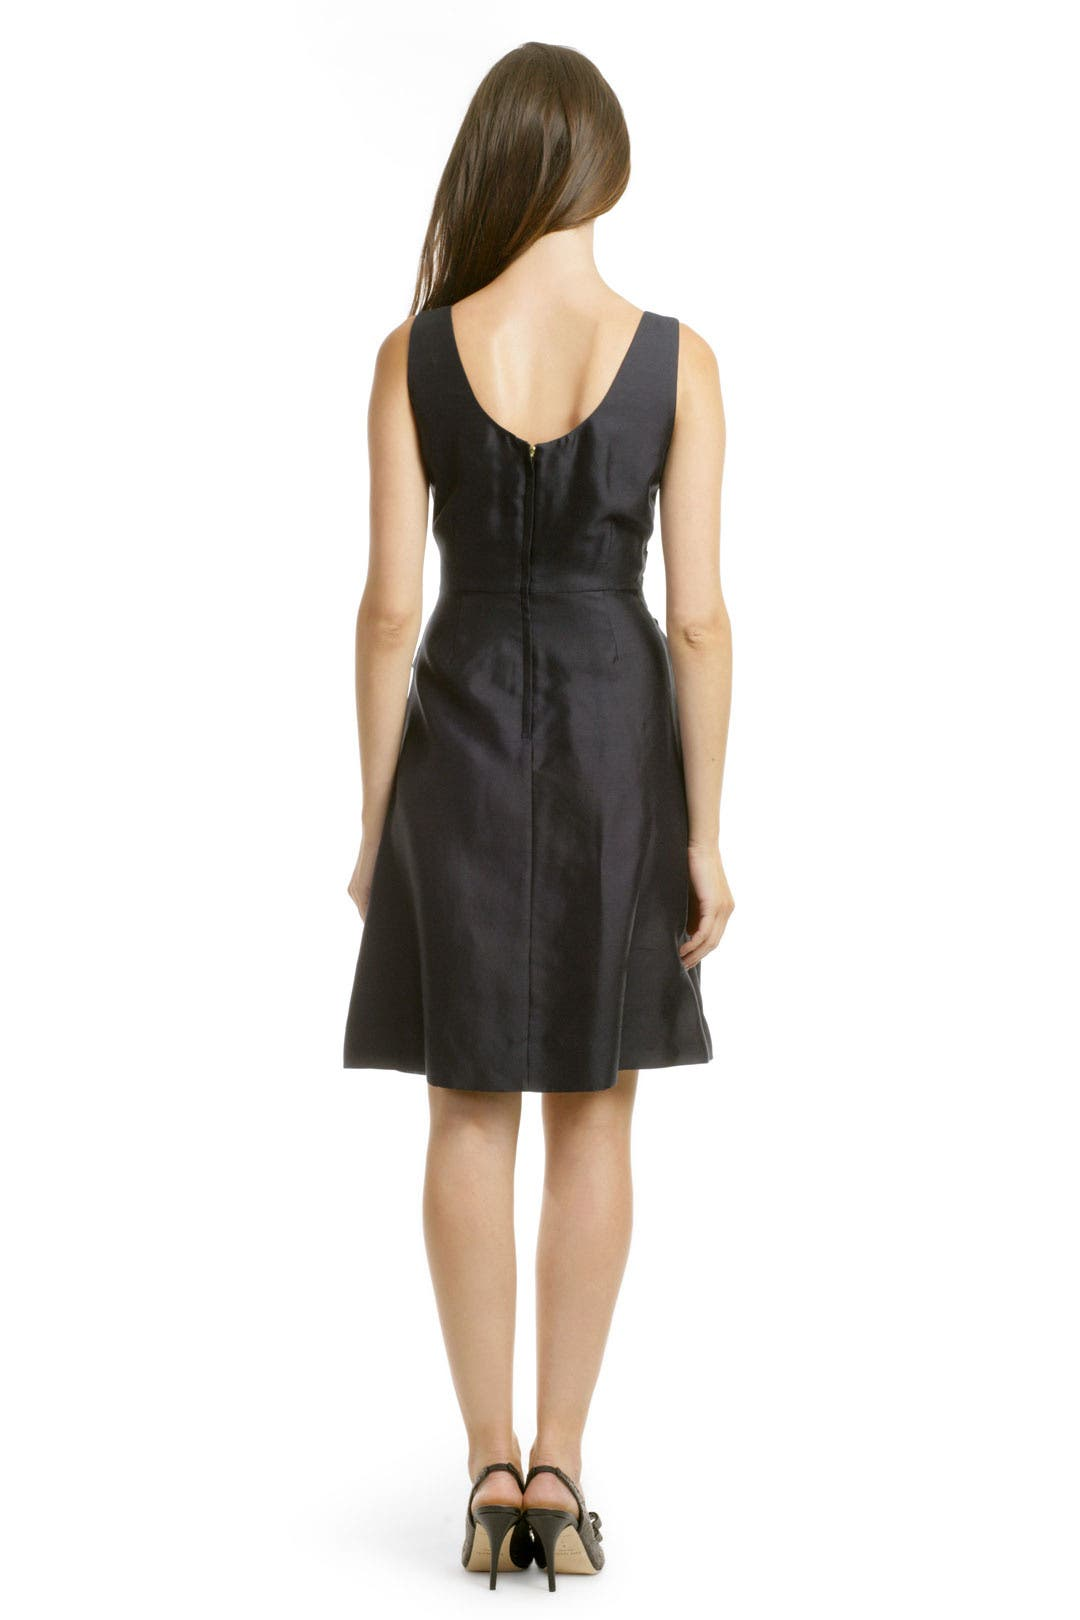 c6882ee87 Jillian Dress by kate spade new york for $99   Rent the Runway